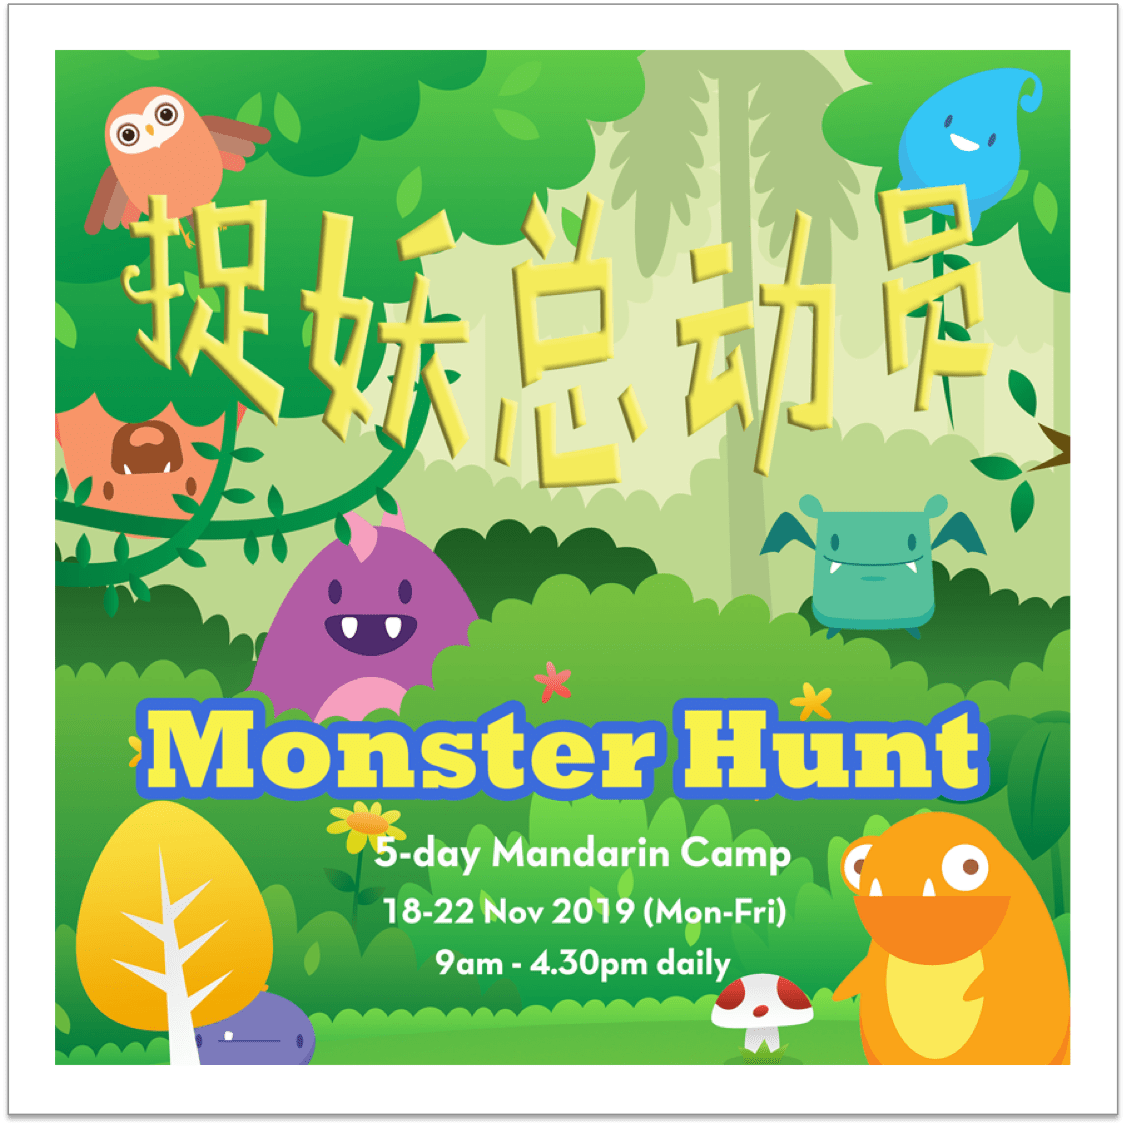 Nov 2019 Mandarin Camp – Monster Hunt